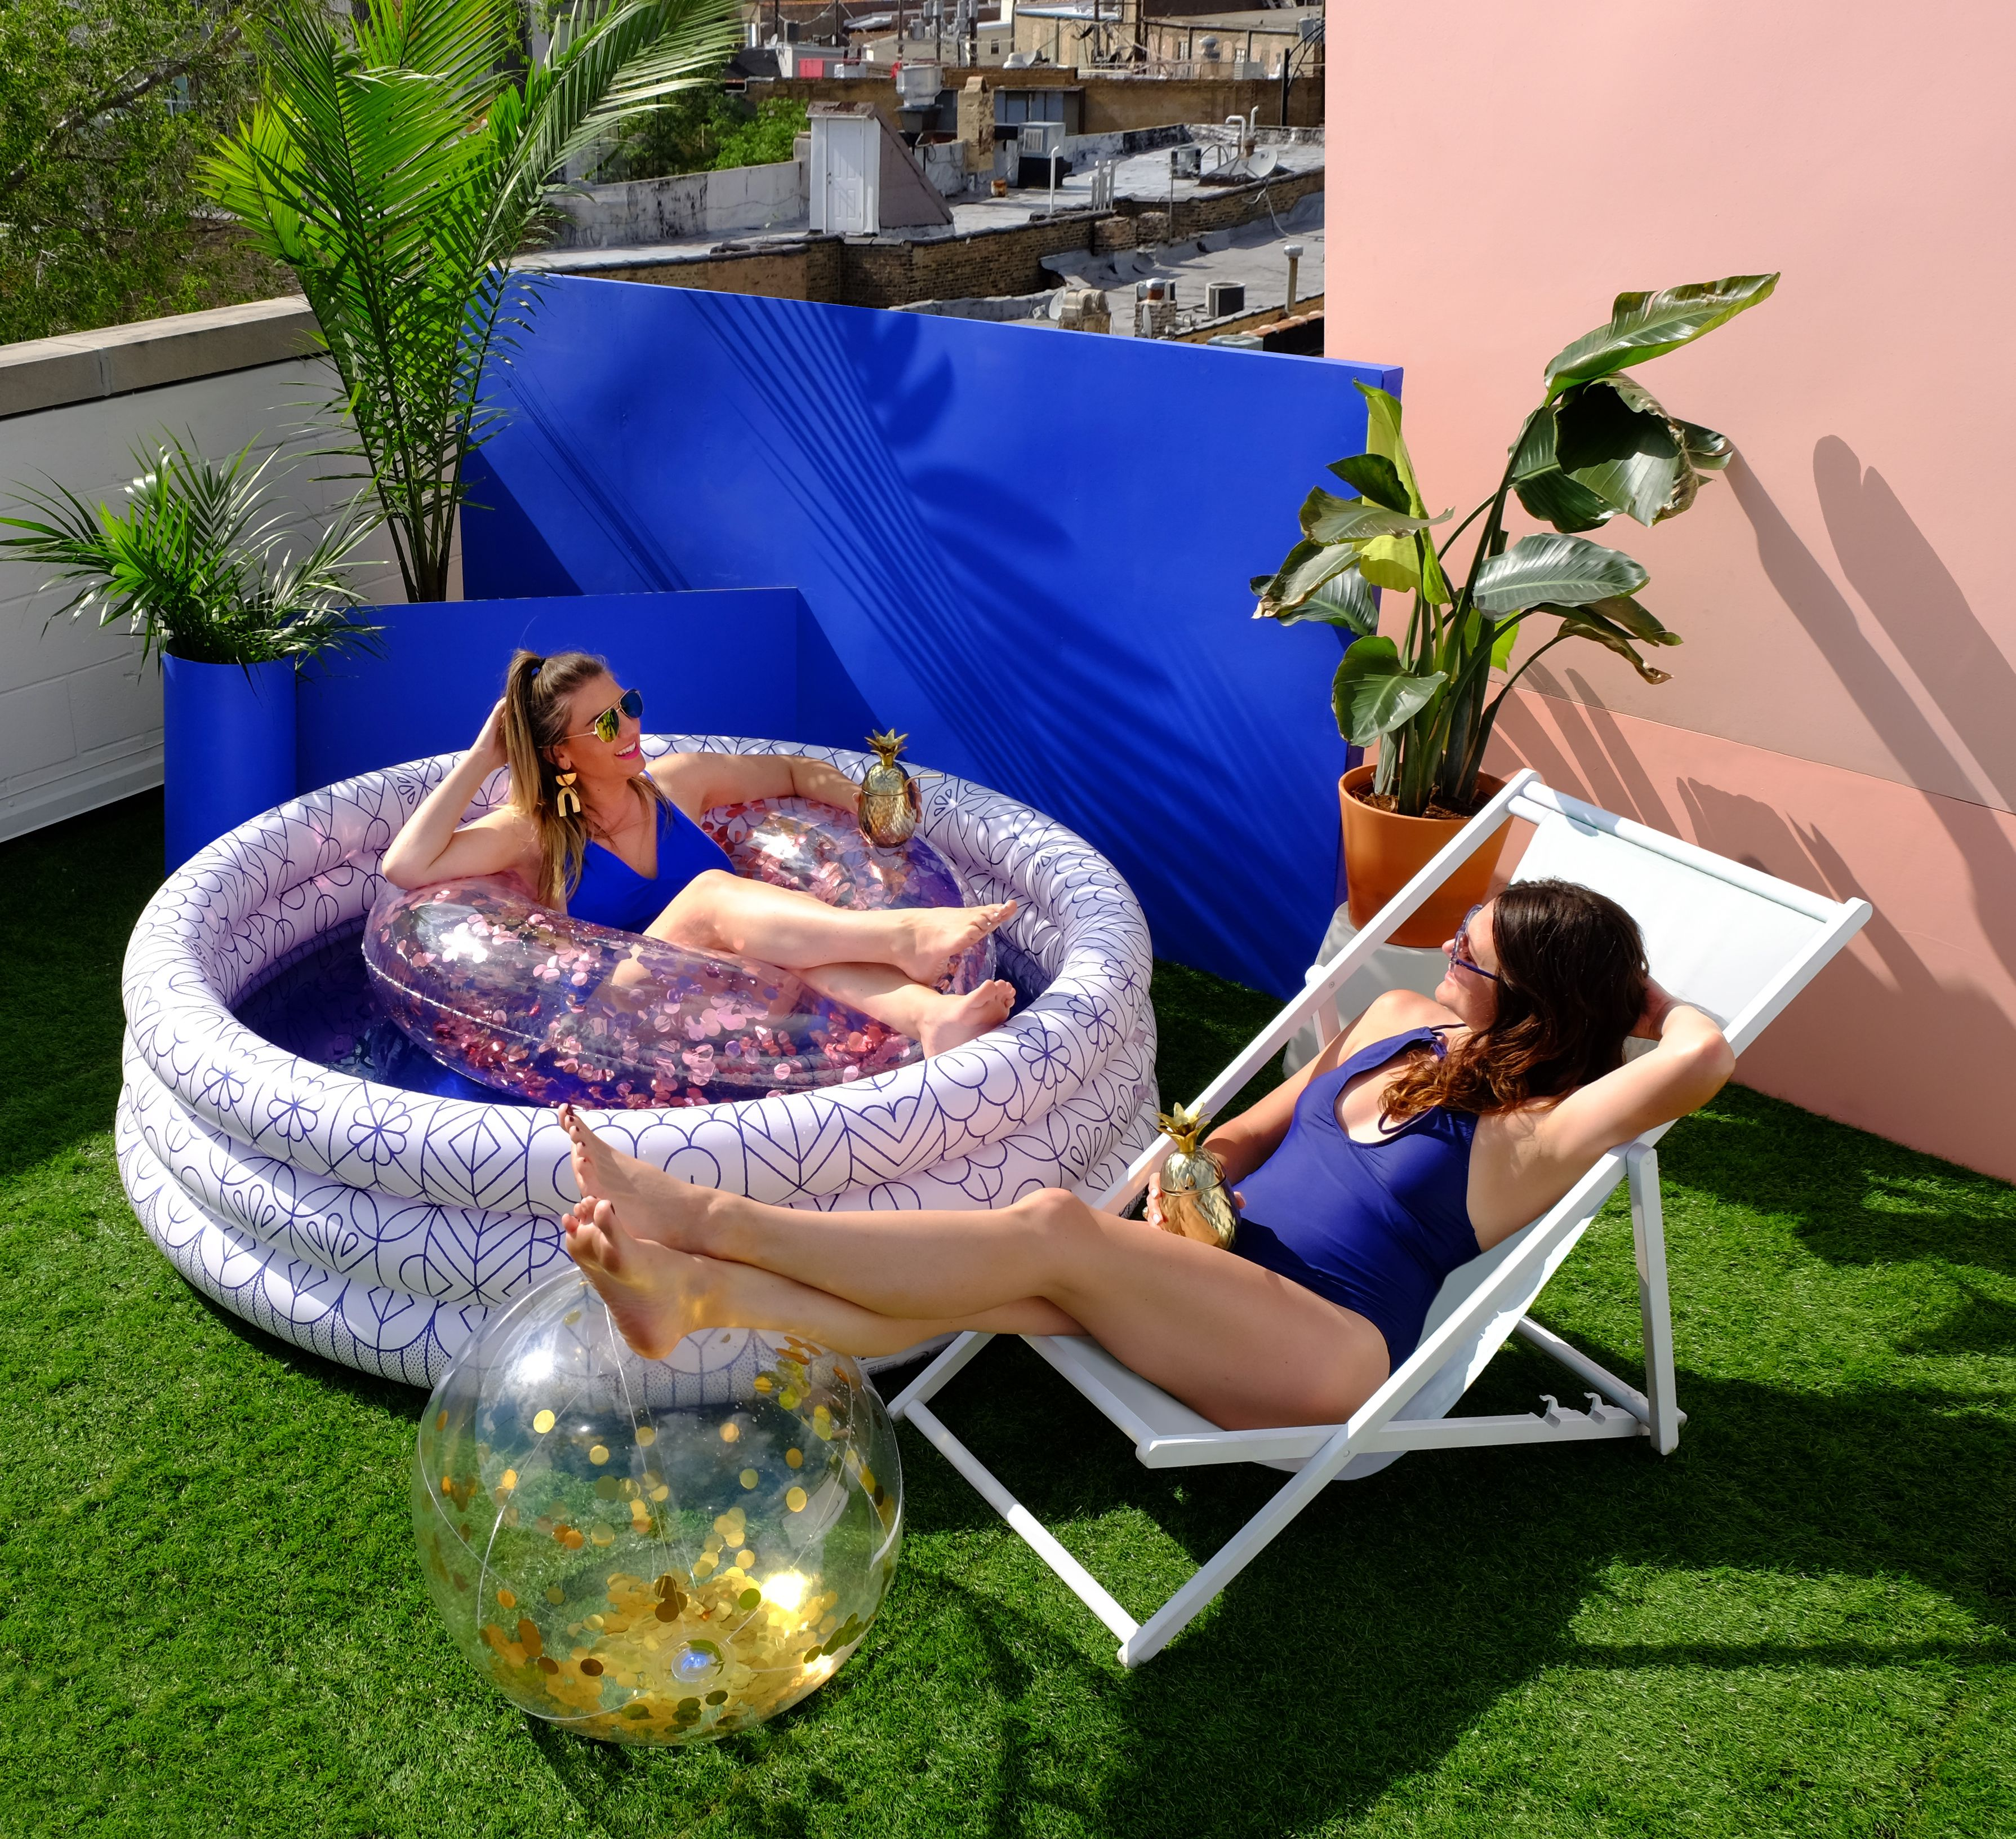 Minnidip The First Designer Inflatable Pool Blue And White Modern Inflatable Pool Cool Pool Cute Inflatable Pool Inflatable Pool Blow Up Pool Kiddie Pool